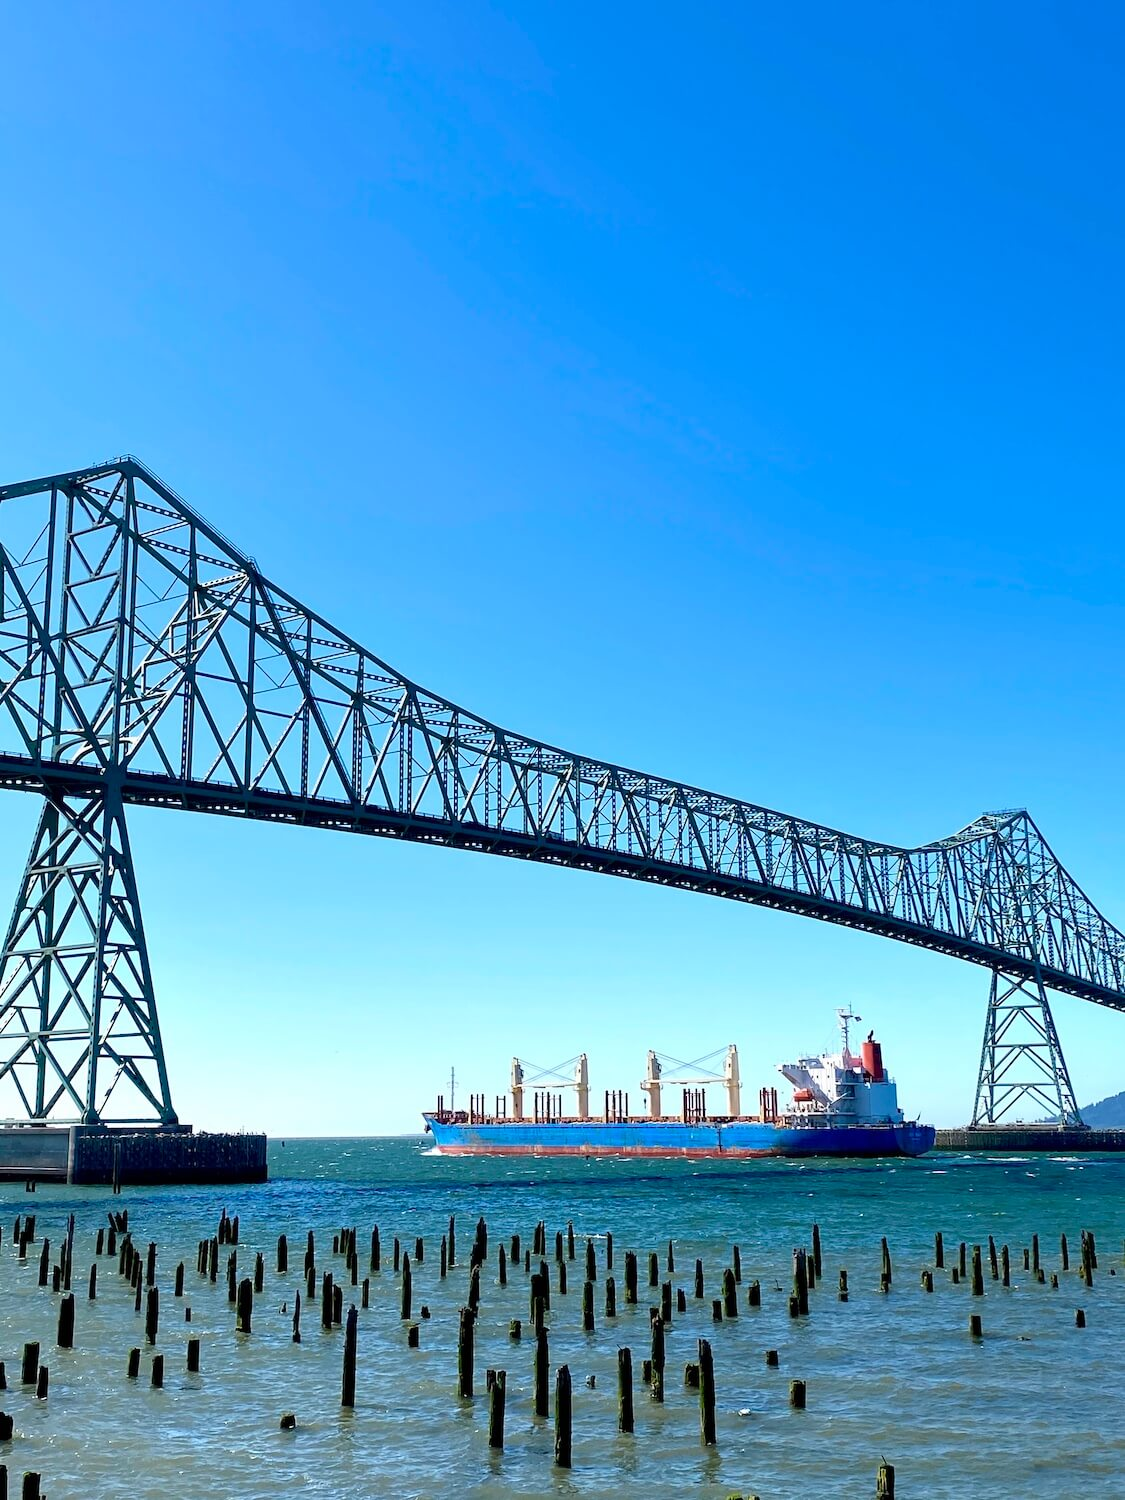 A large sea going vessel floats underneath the Astoria Bridge on the way out to sea. The ship is carrying grain and has a blue hull with white upper decks. The Astoria Bridge rises high up into the blue sky. Pacific Northwest travel always involves water.